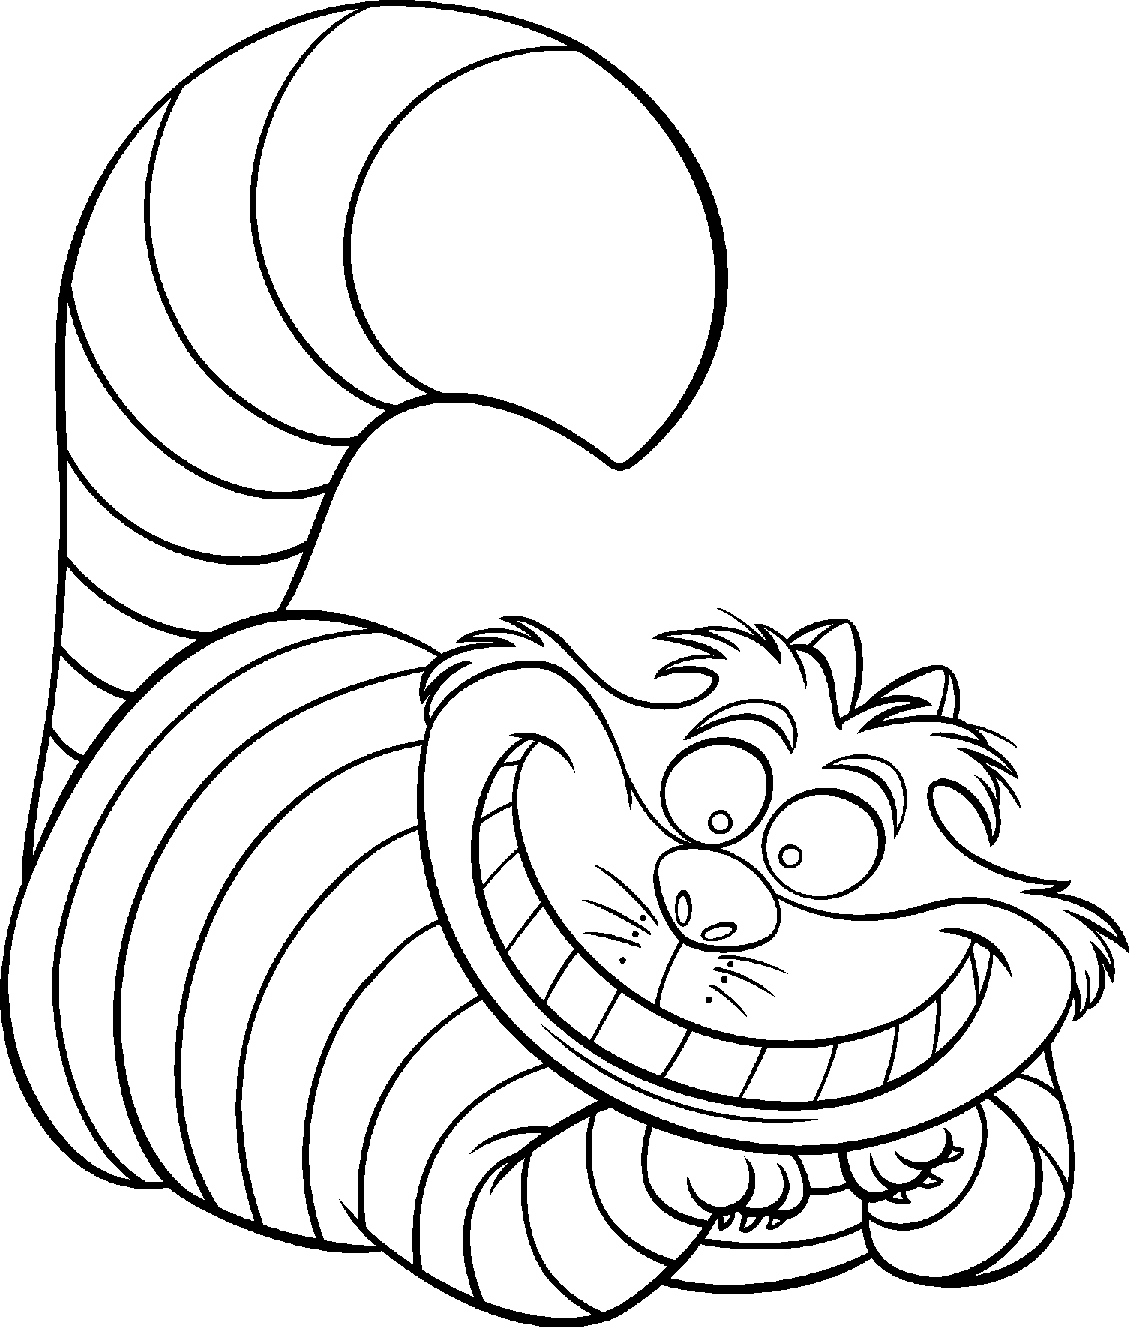 Cartoon Coloring Pages Printable Coloring Pages - disney cartoon coloring pages